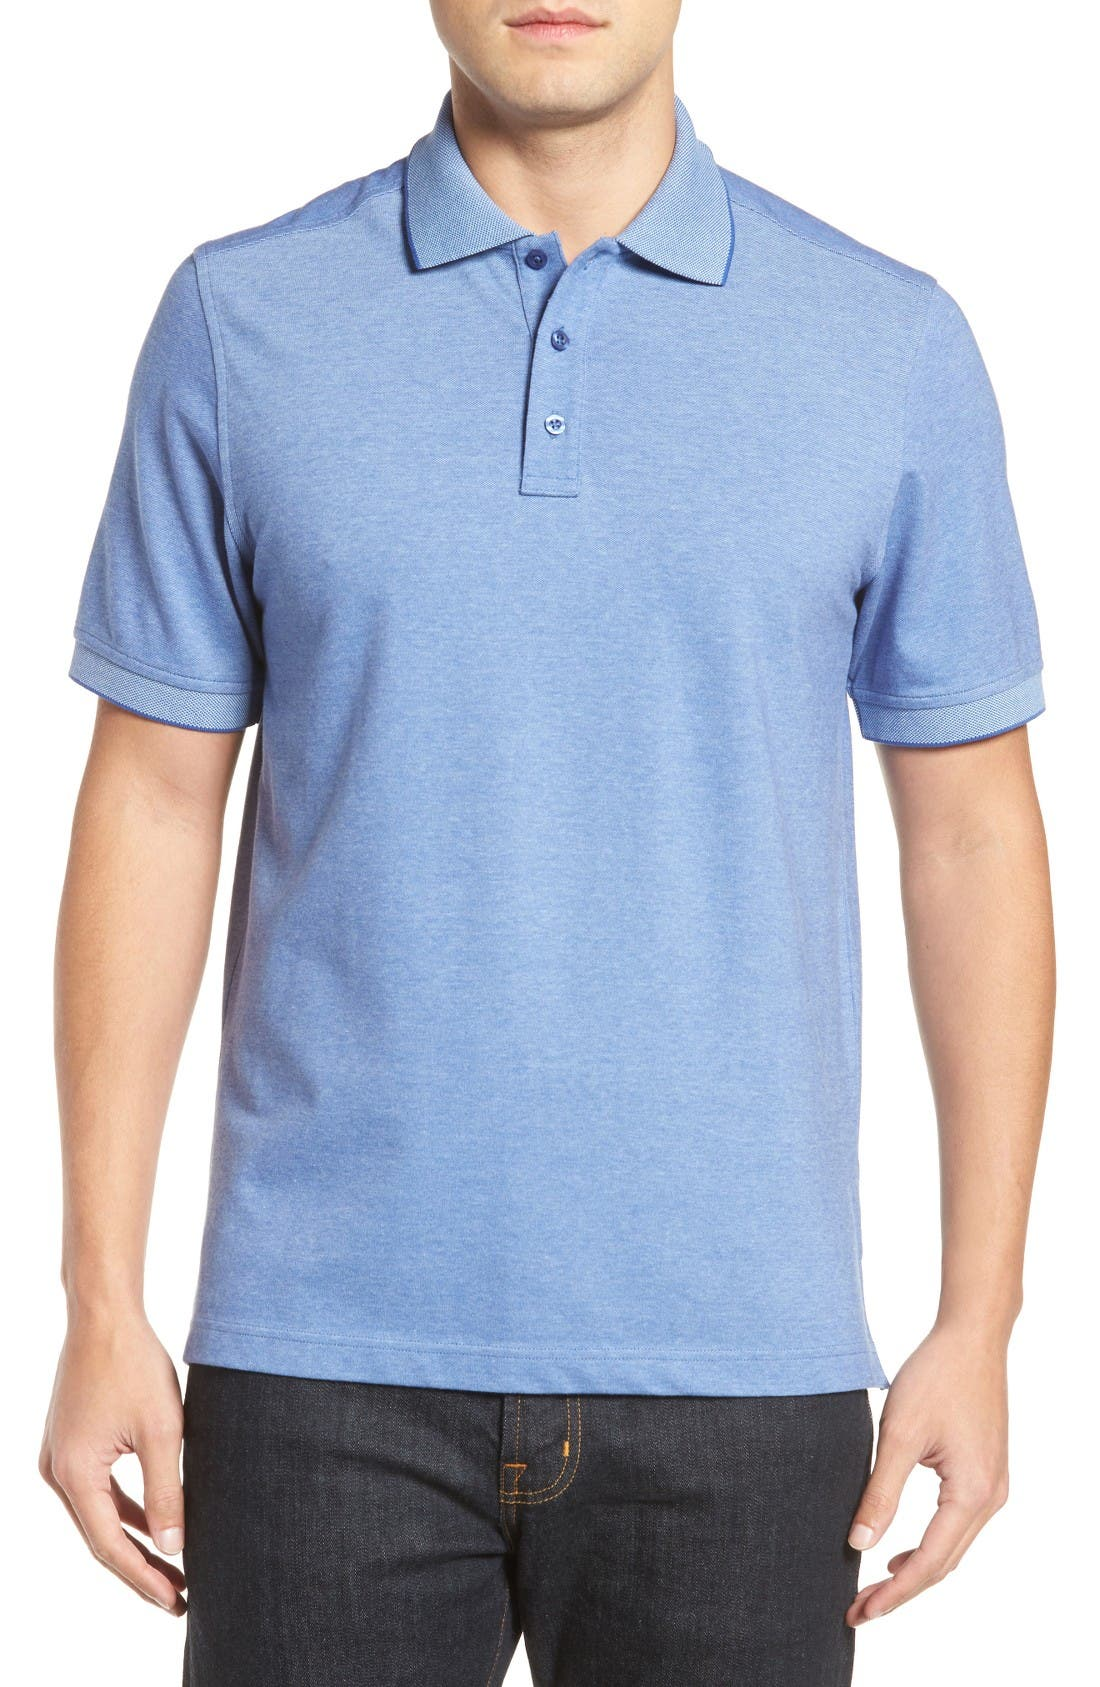 Nordstrom Men's Shop Classic Regular Fit Oxford Piqué Polo